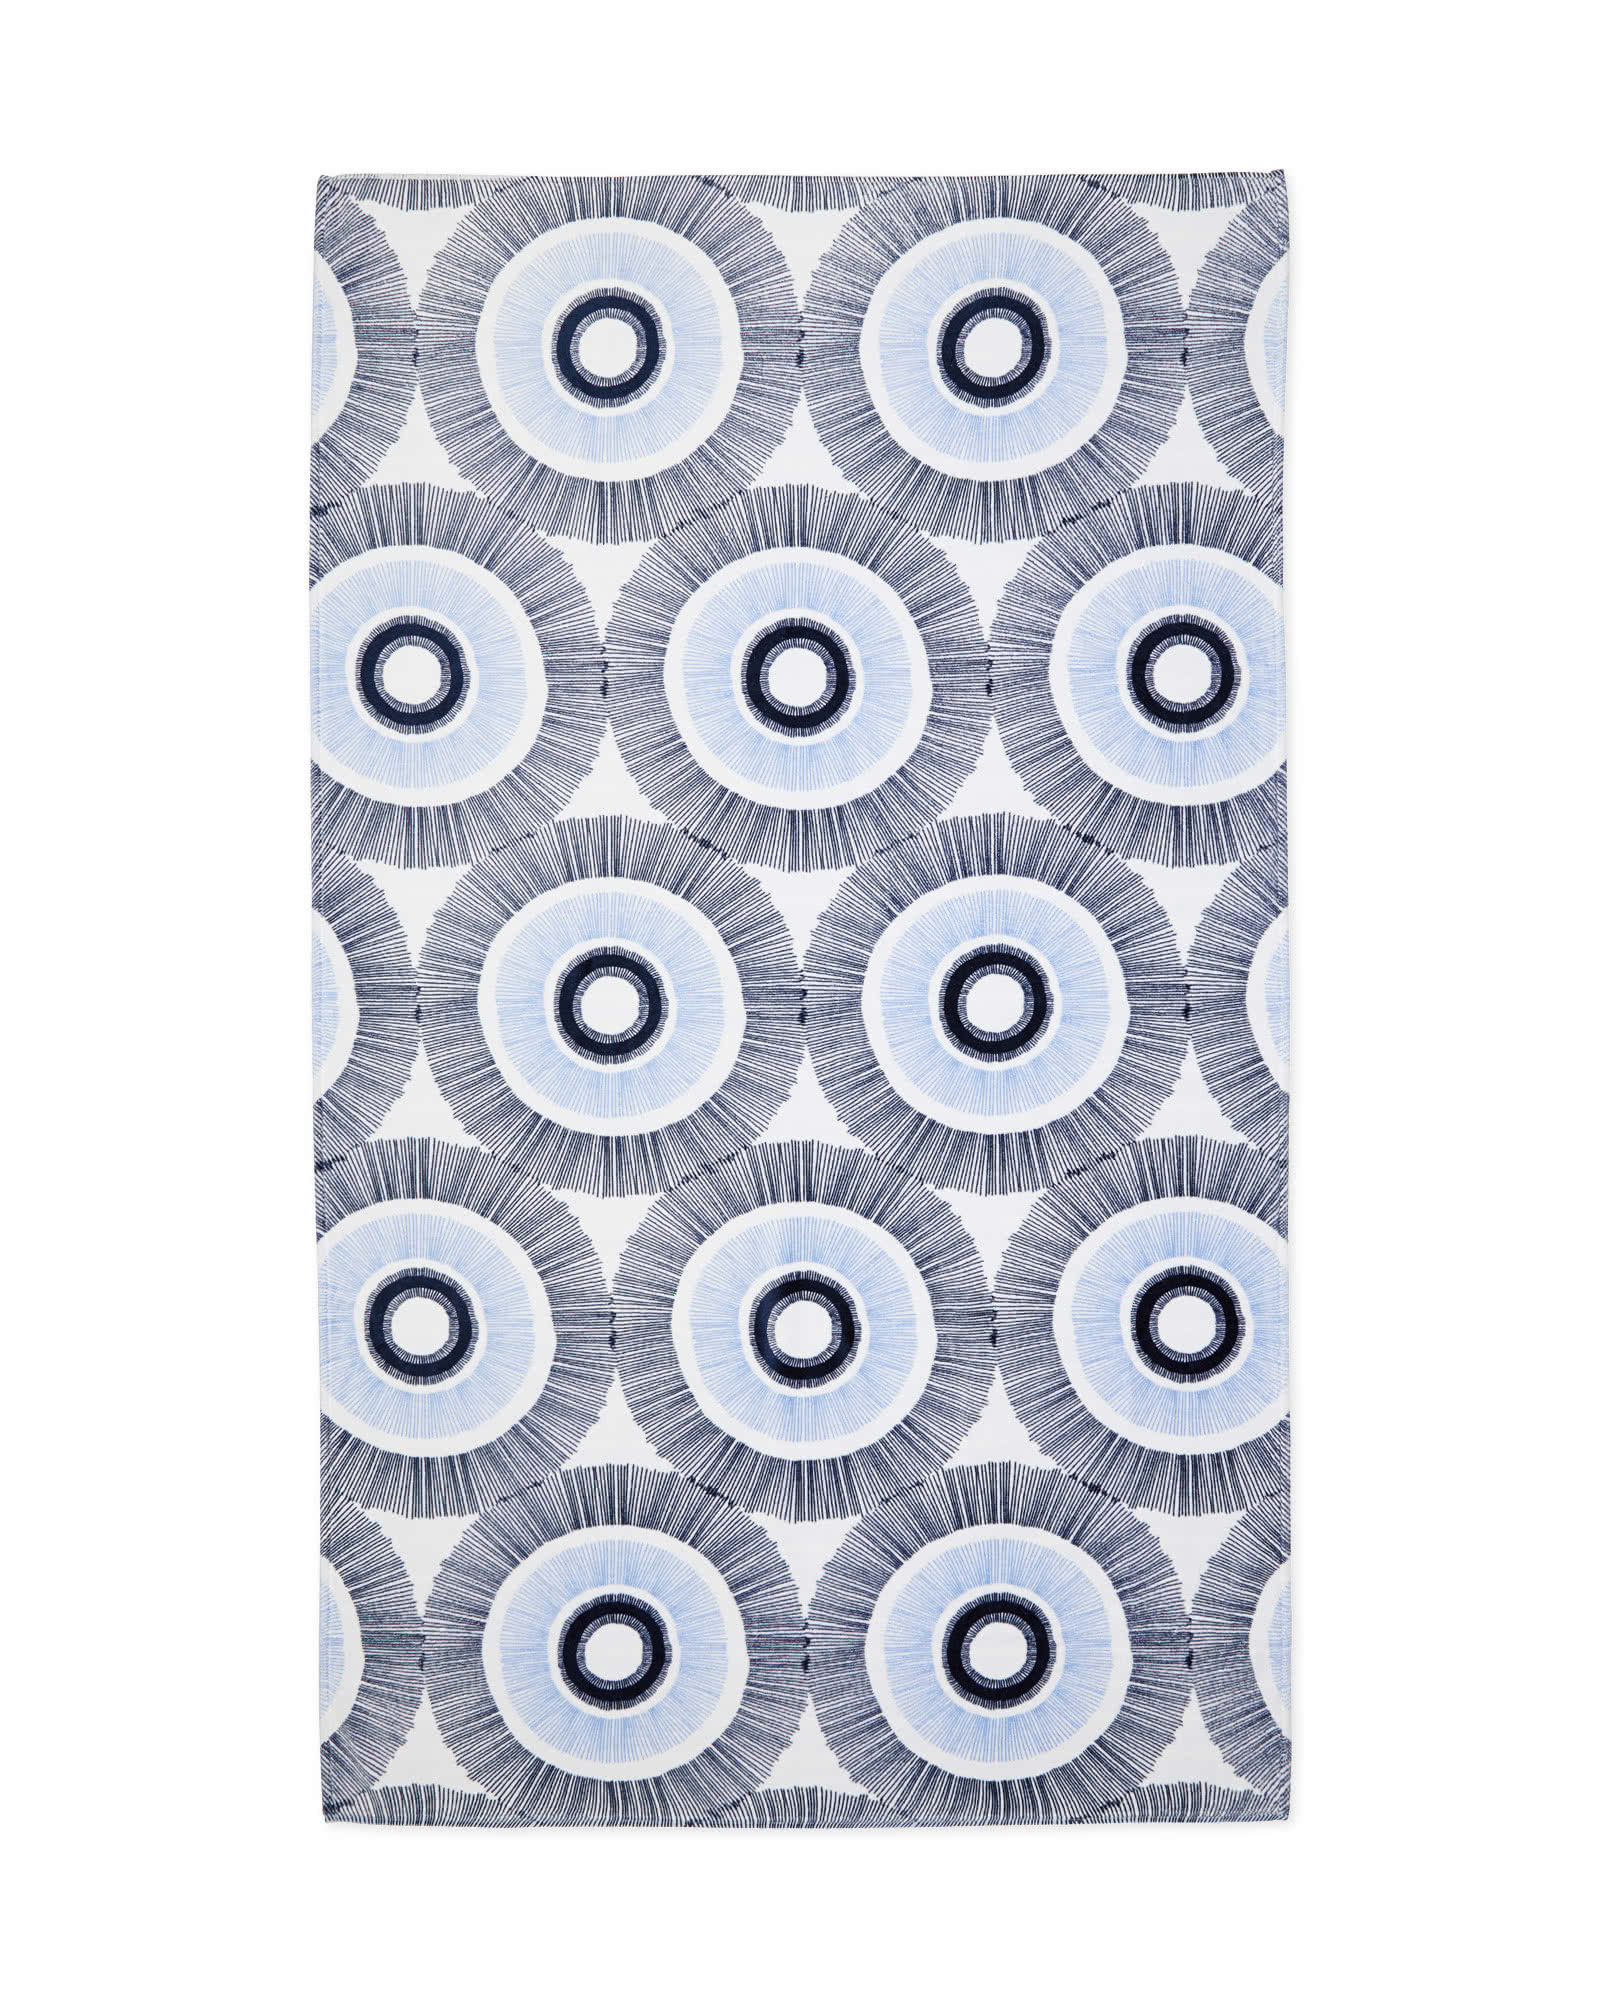 Bodega Beach Towel, Harbor